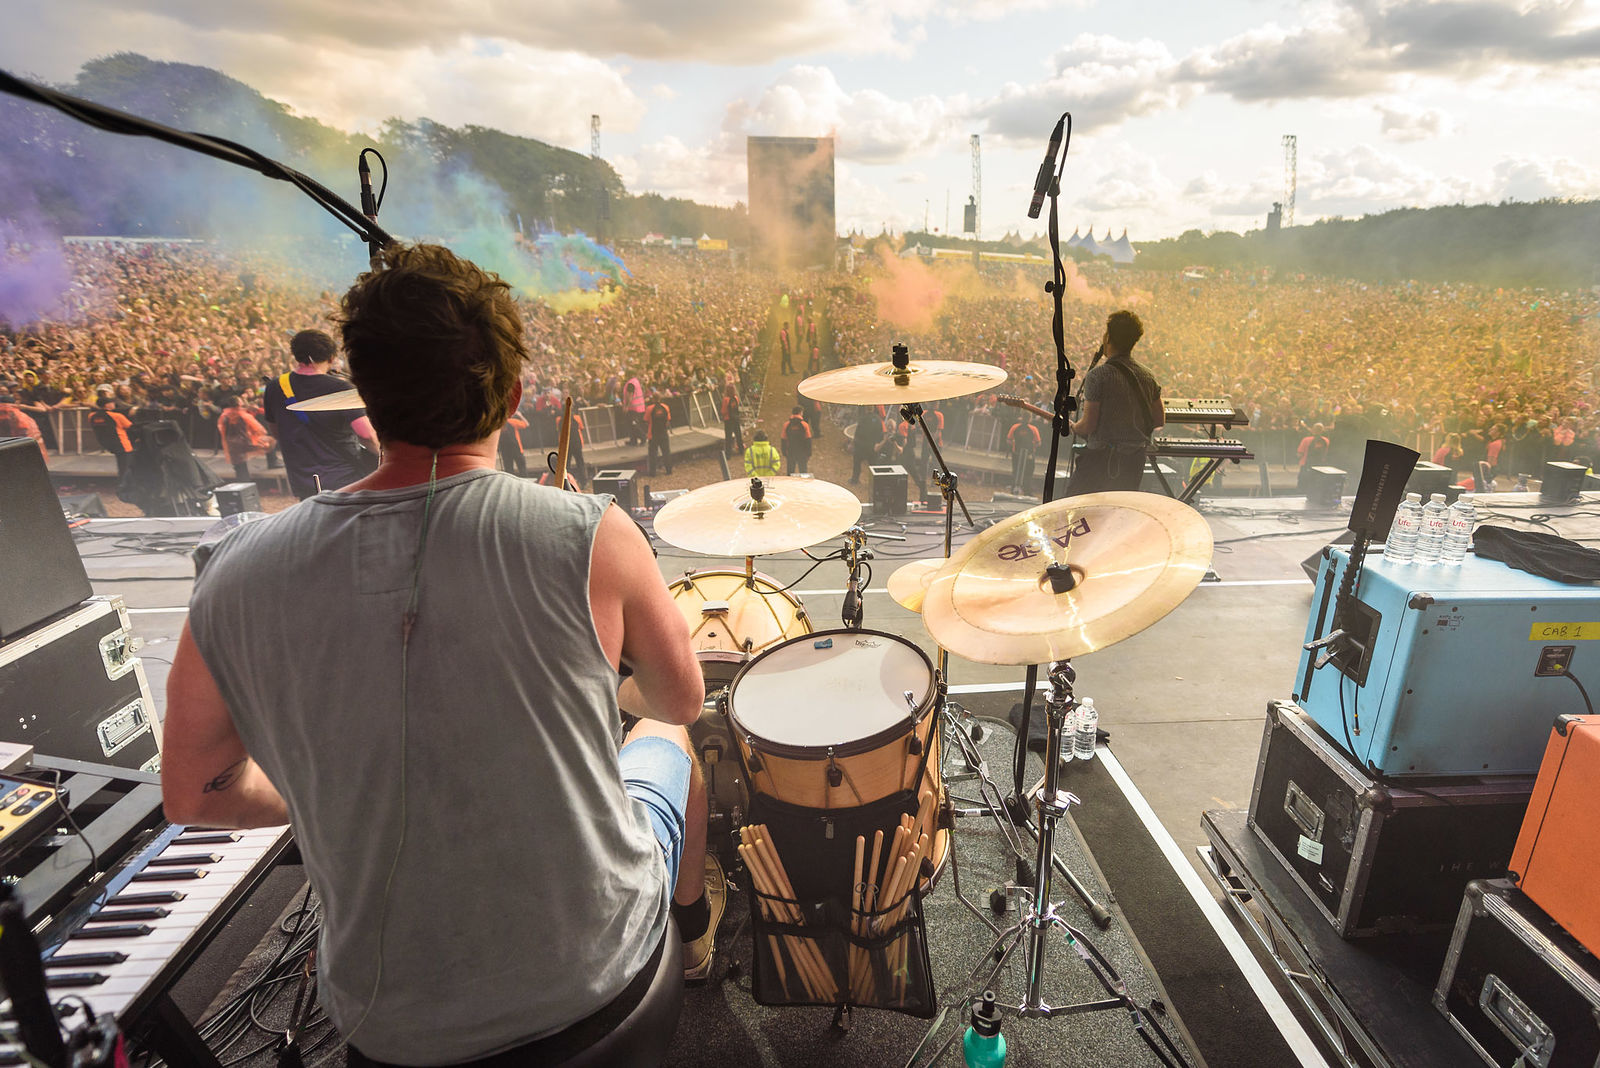 THE WOMBATS STORMING THE MAIN STAGE AT LEEDS FESTIVAL 2018 - 25.08.2018  PICTURE BY: DAVID DILLON